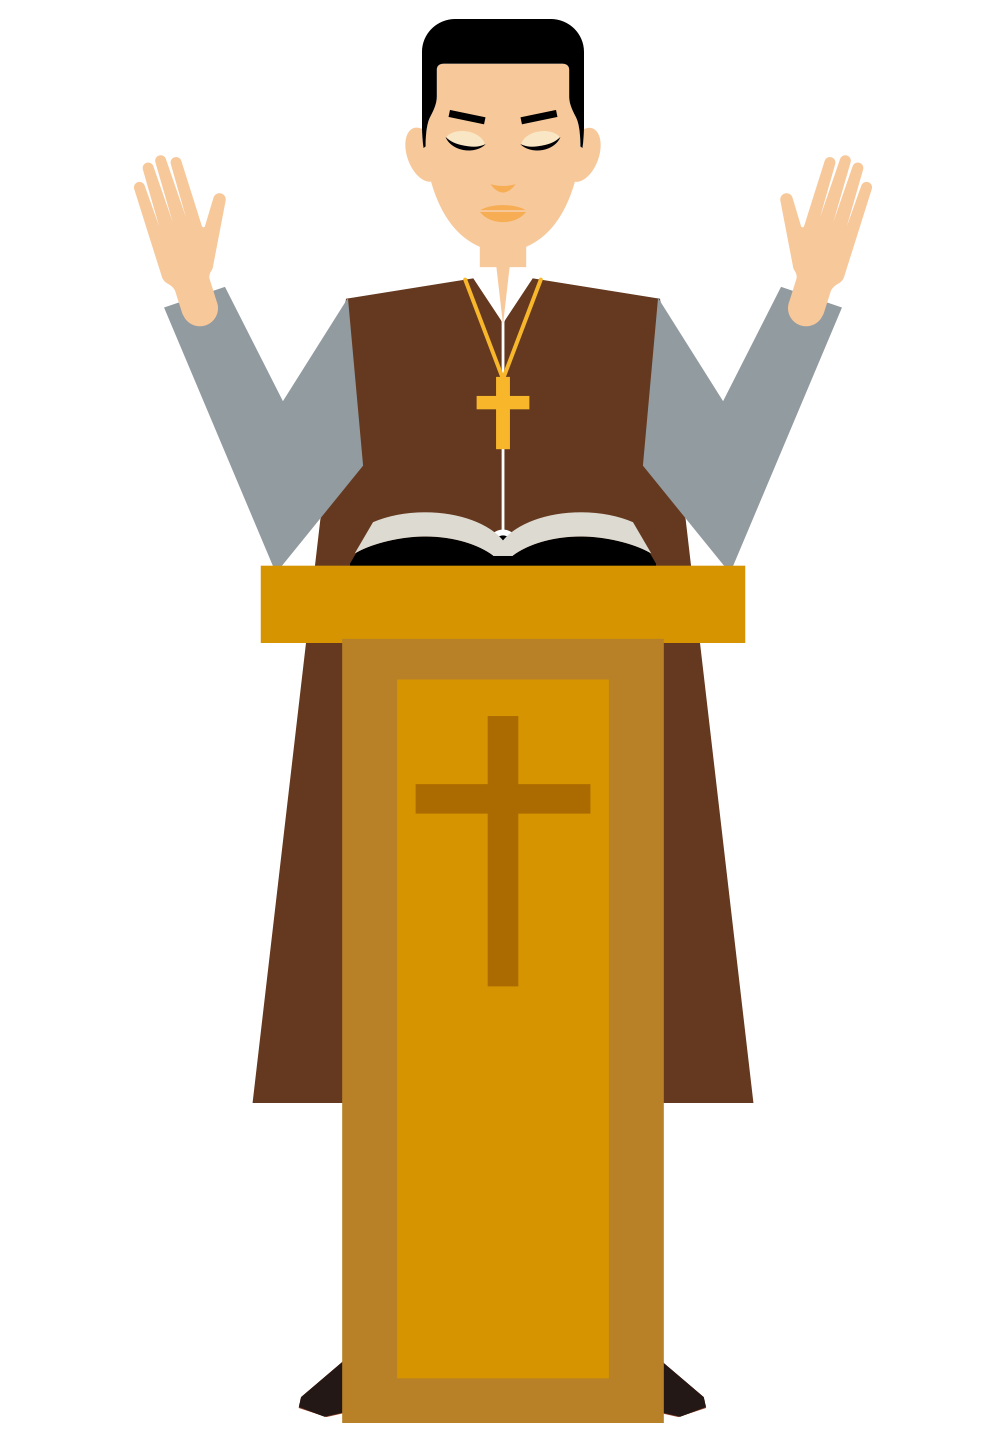 freeuse library Cartoon illustration christian priests. Priest clipart pastor.